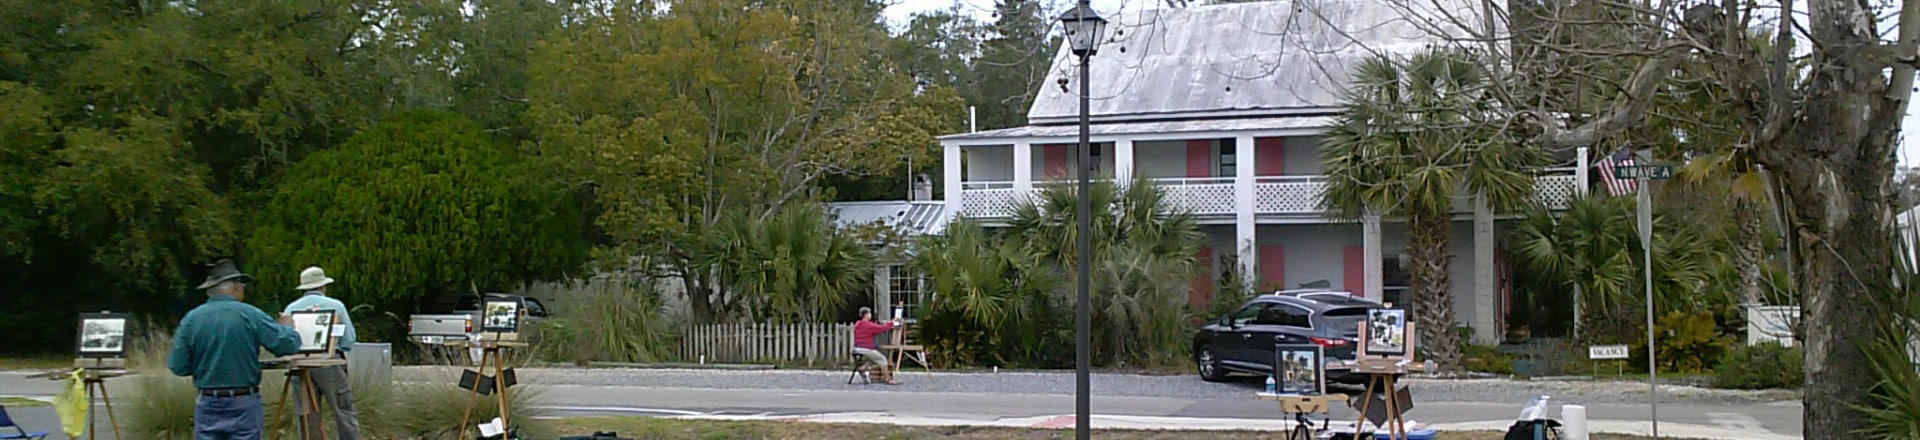 Artist Painting The Old Carrabelle Hotel